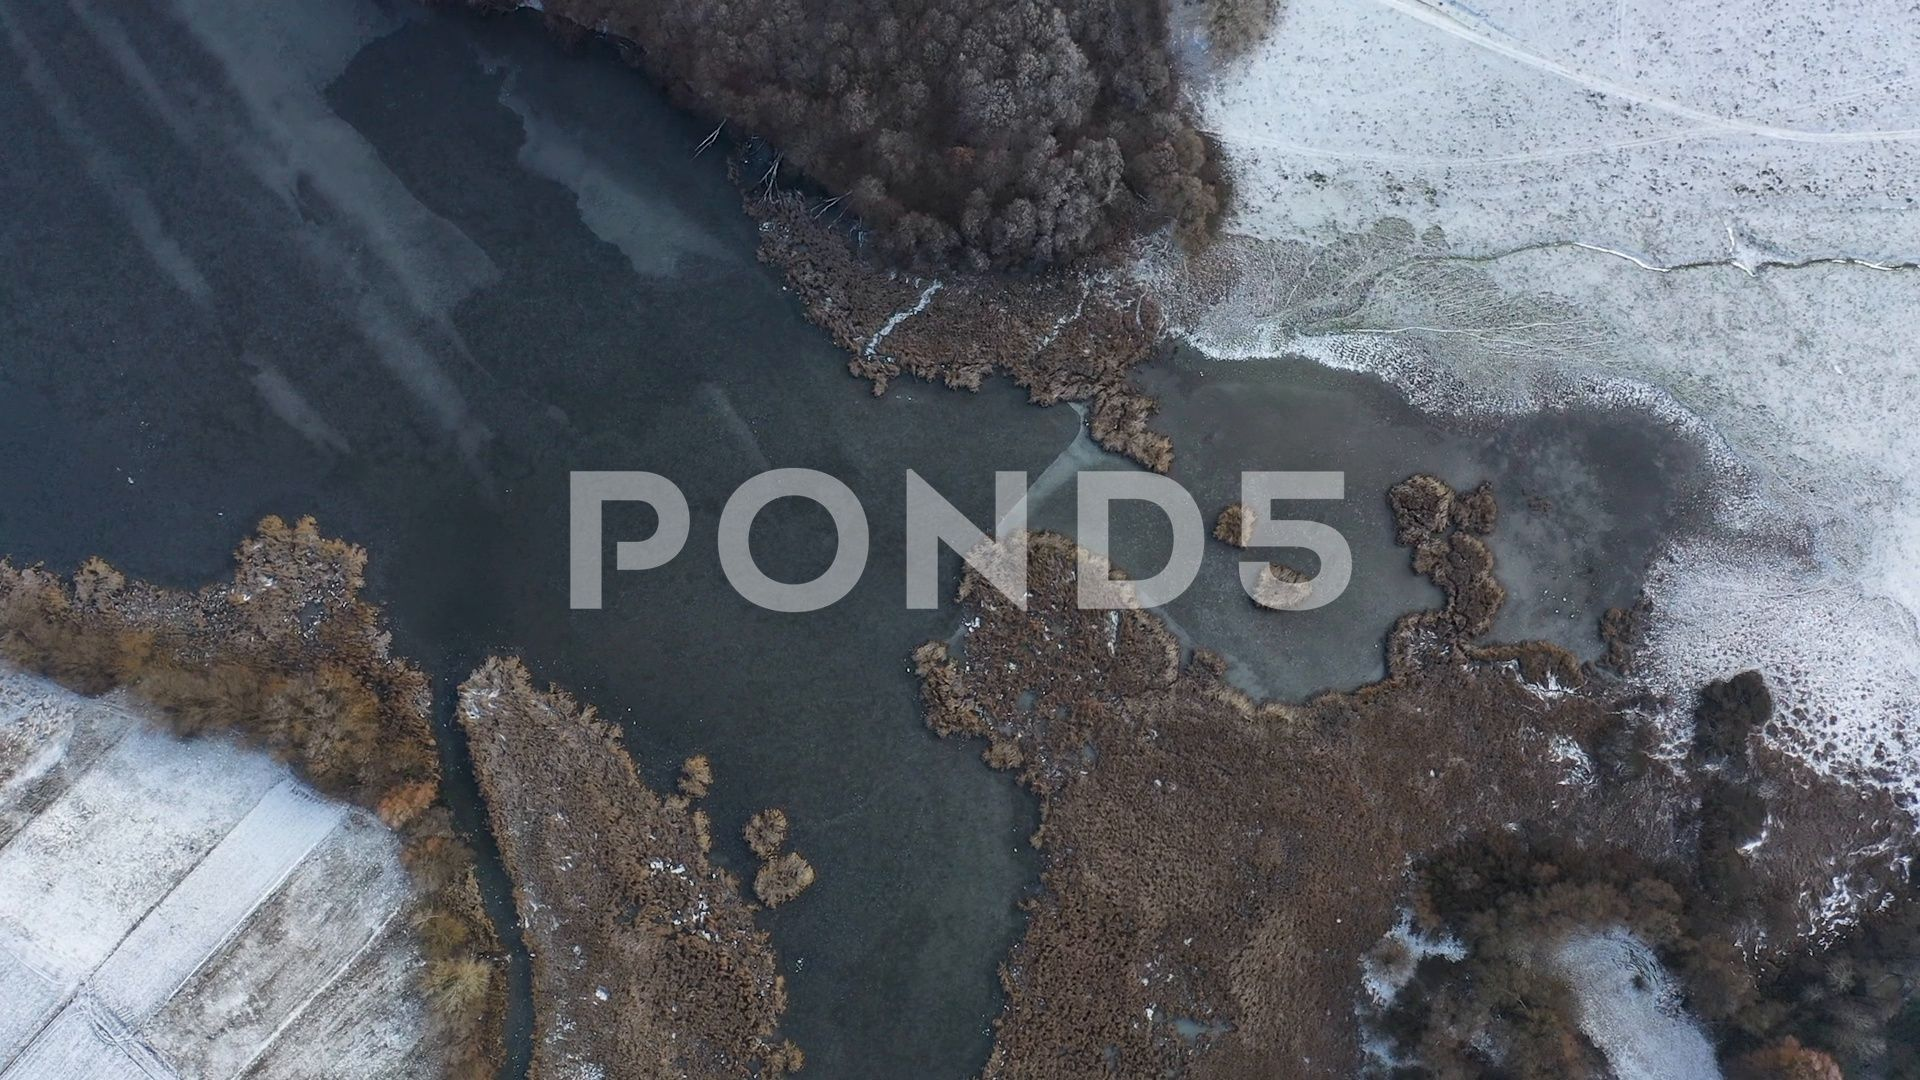 A small river and a swamp in the winter season Drone view swampwintersmallriver